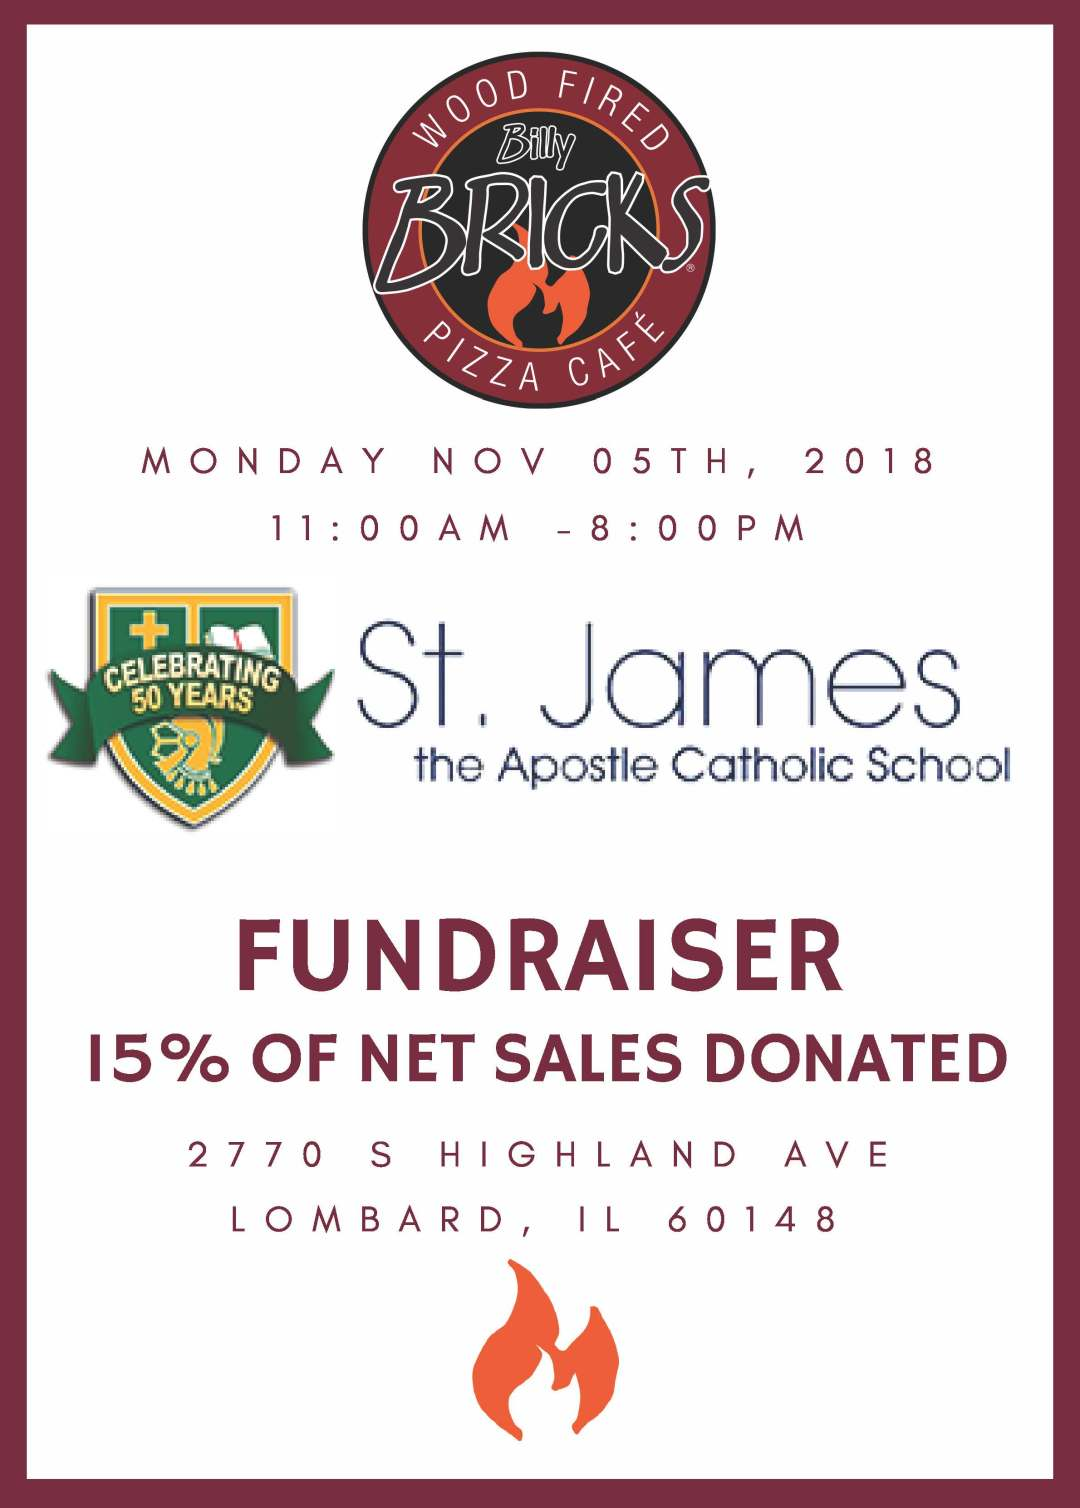 St James Fundraiser 2018